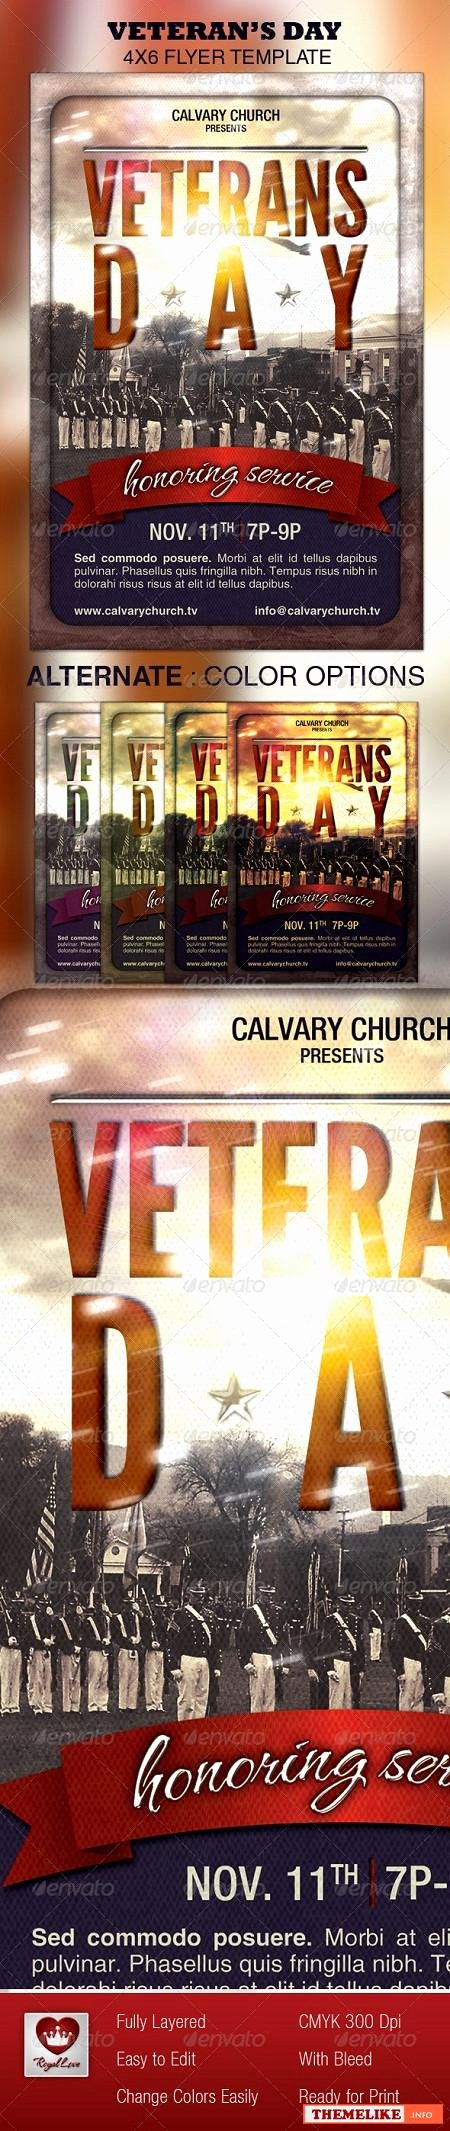 Veterans Day Flyer Template Free Luxury Veterans Day Psd Flyer Template All Design Template